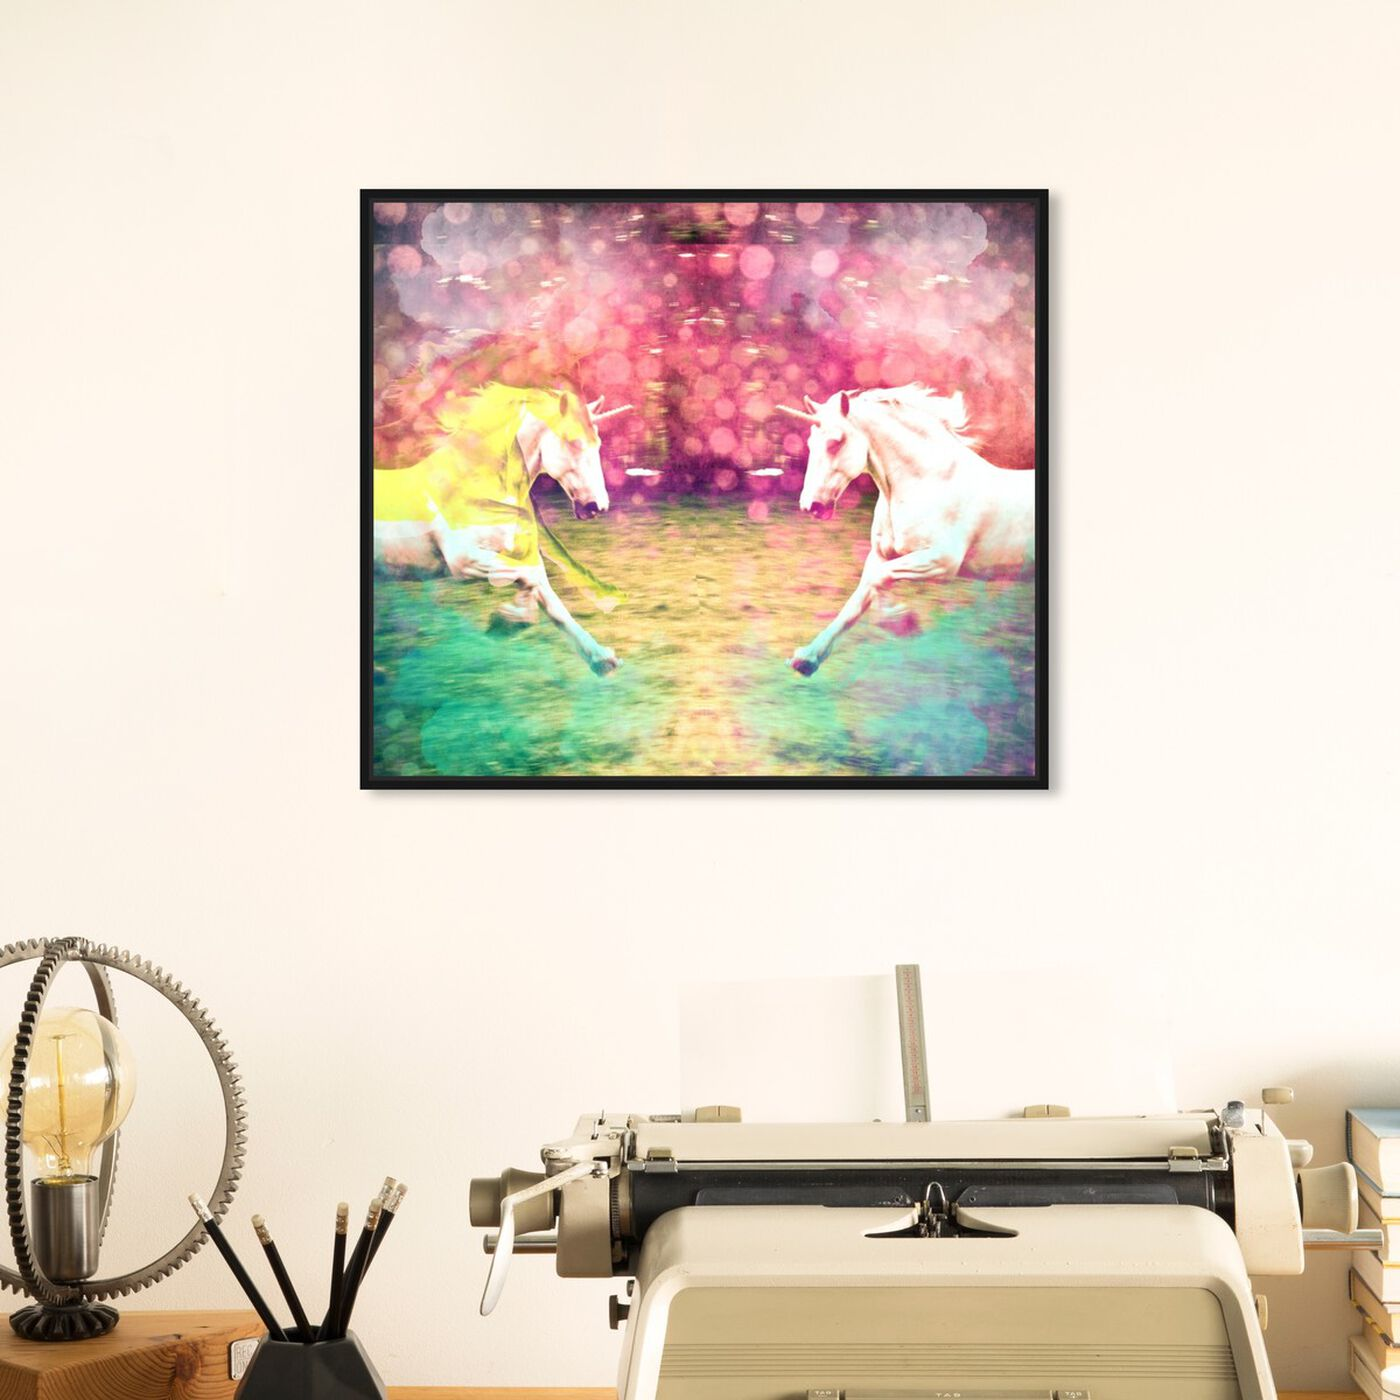 Hanging view of Unicorns Dusk featuring fantasy and sci-fi and fantasy creatures art.